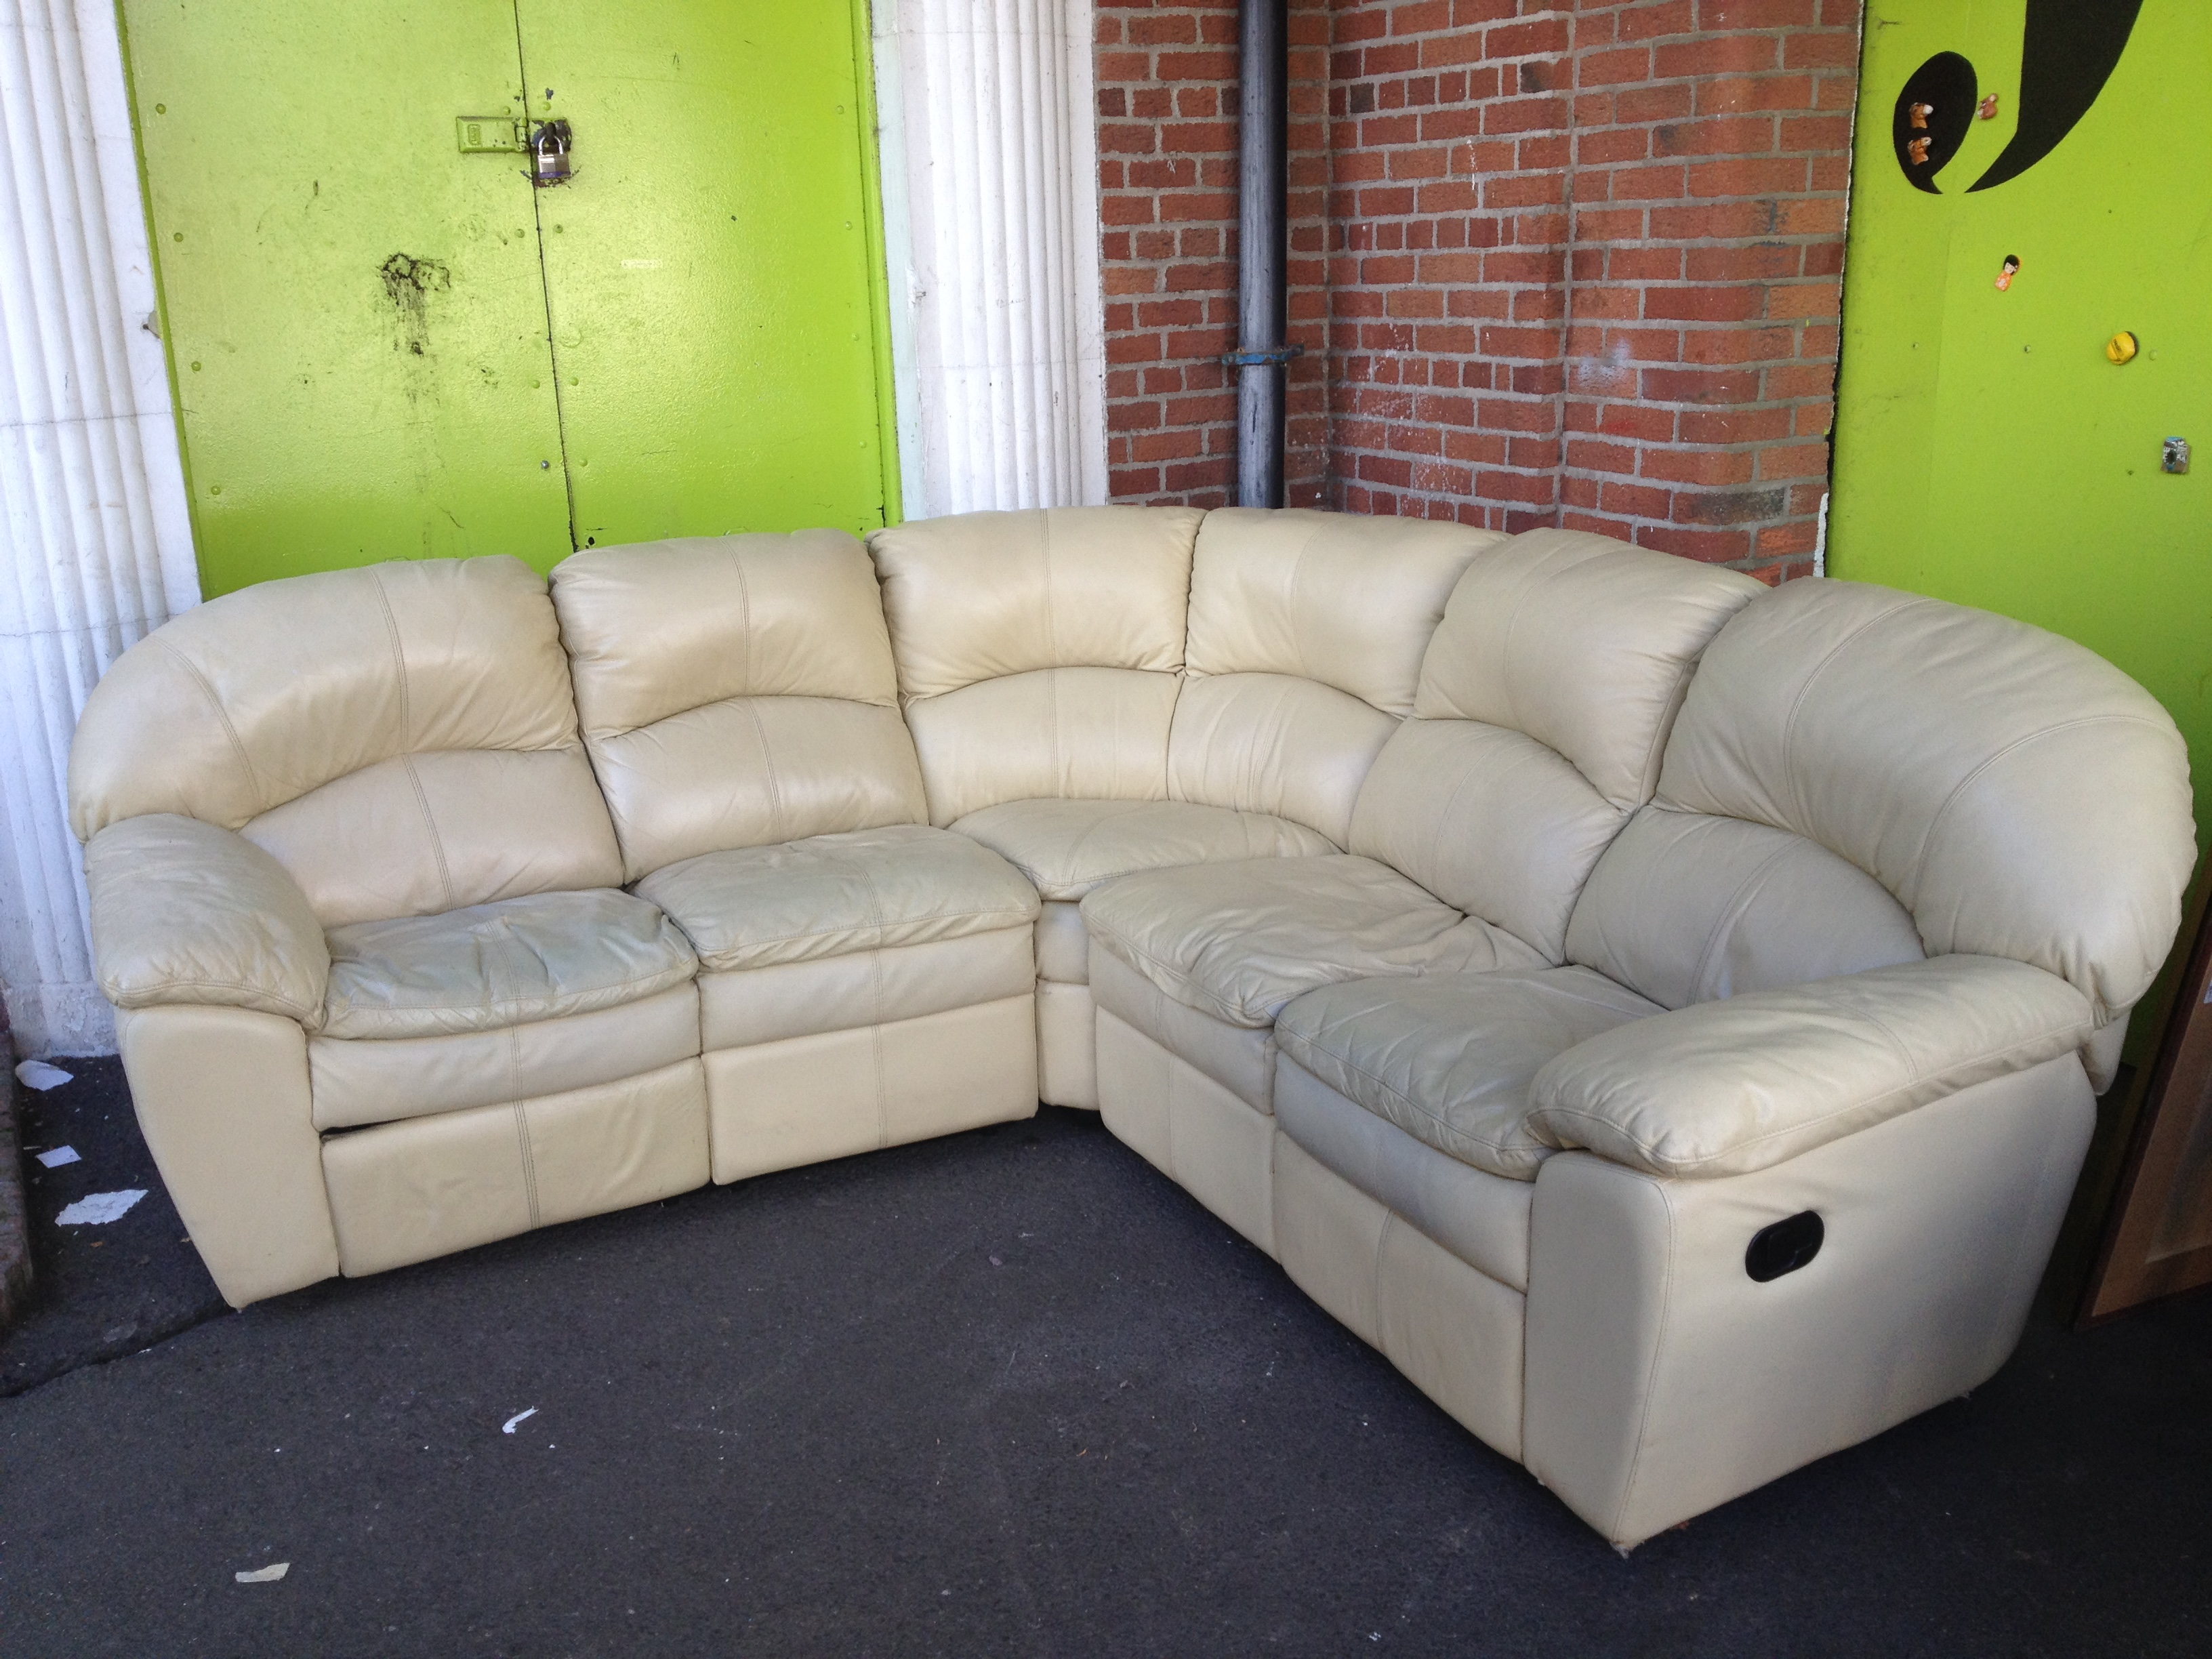 2nd hand sofas for sale buy cheap sofas and couches in